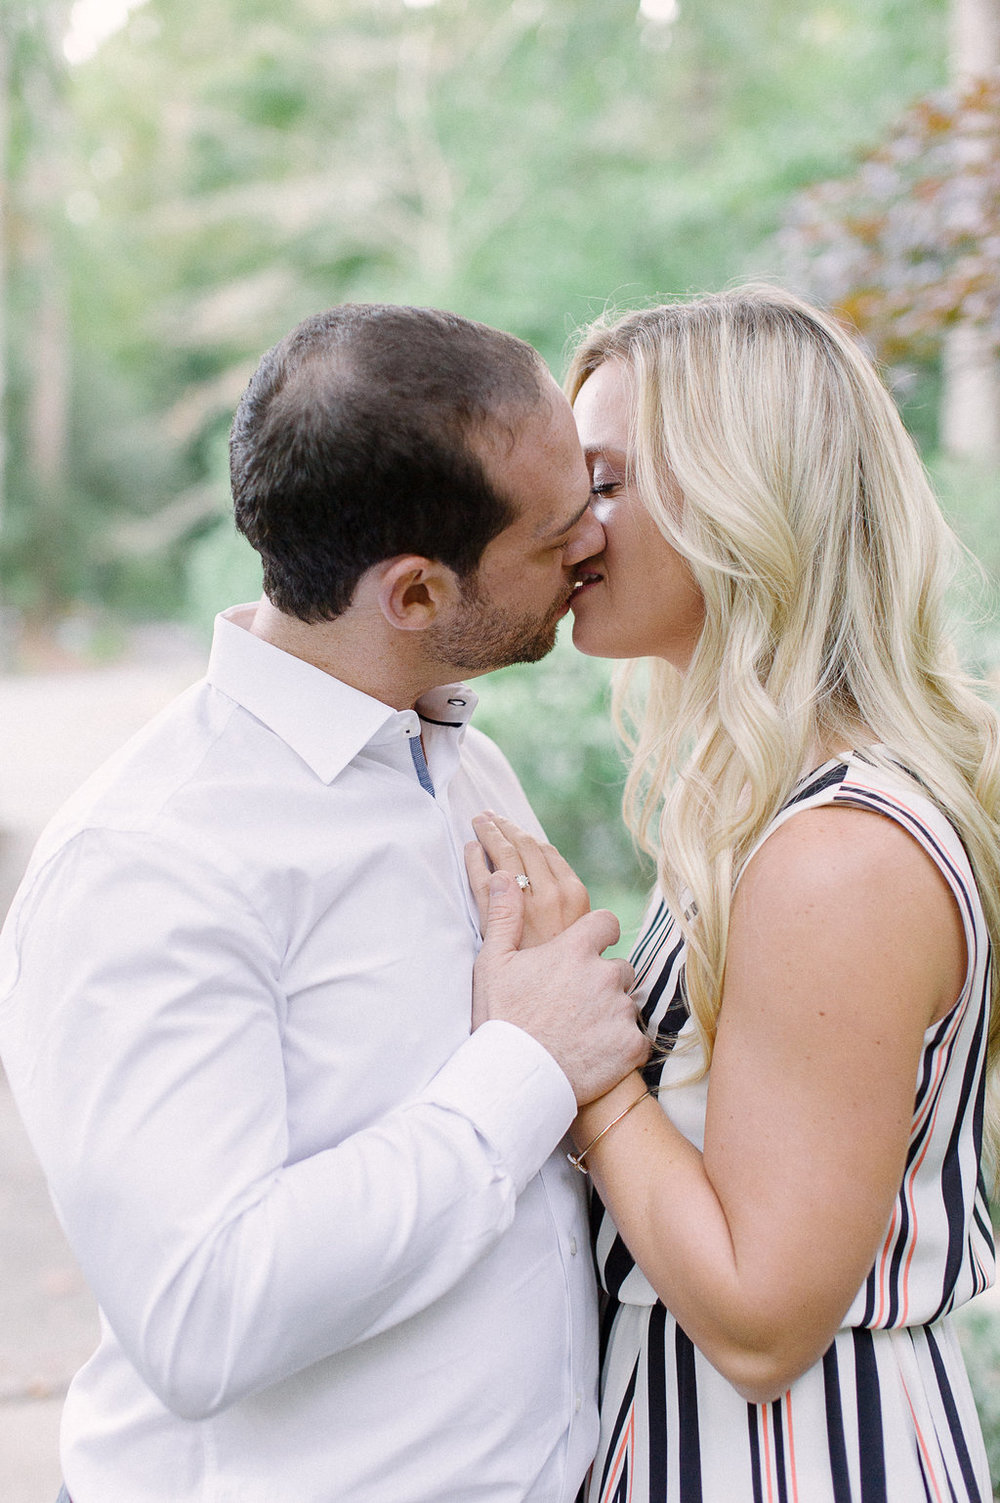 Cator-Woolford-Gardens-Engagement-atlanta-wedding-photographer-hannah-forsberg-15.jpg